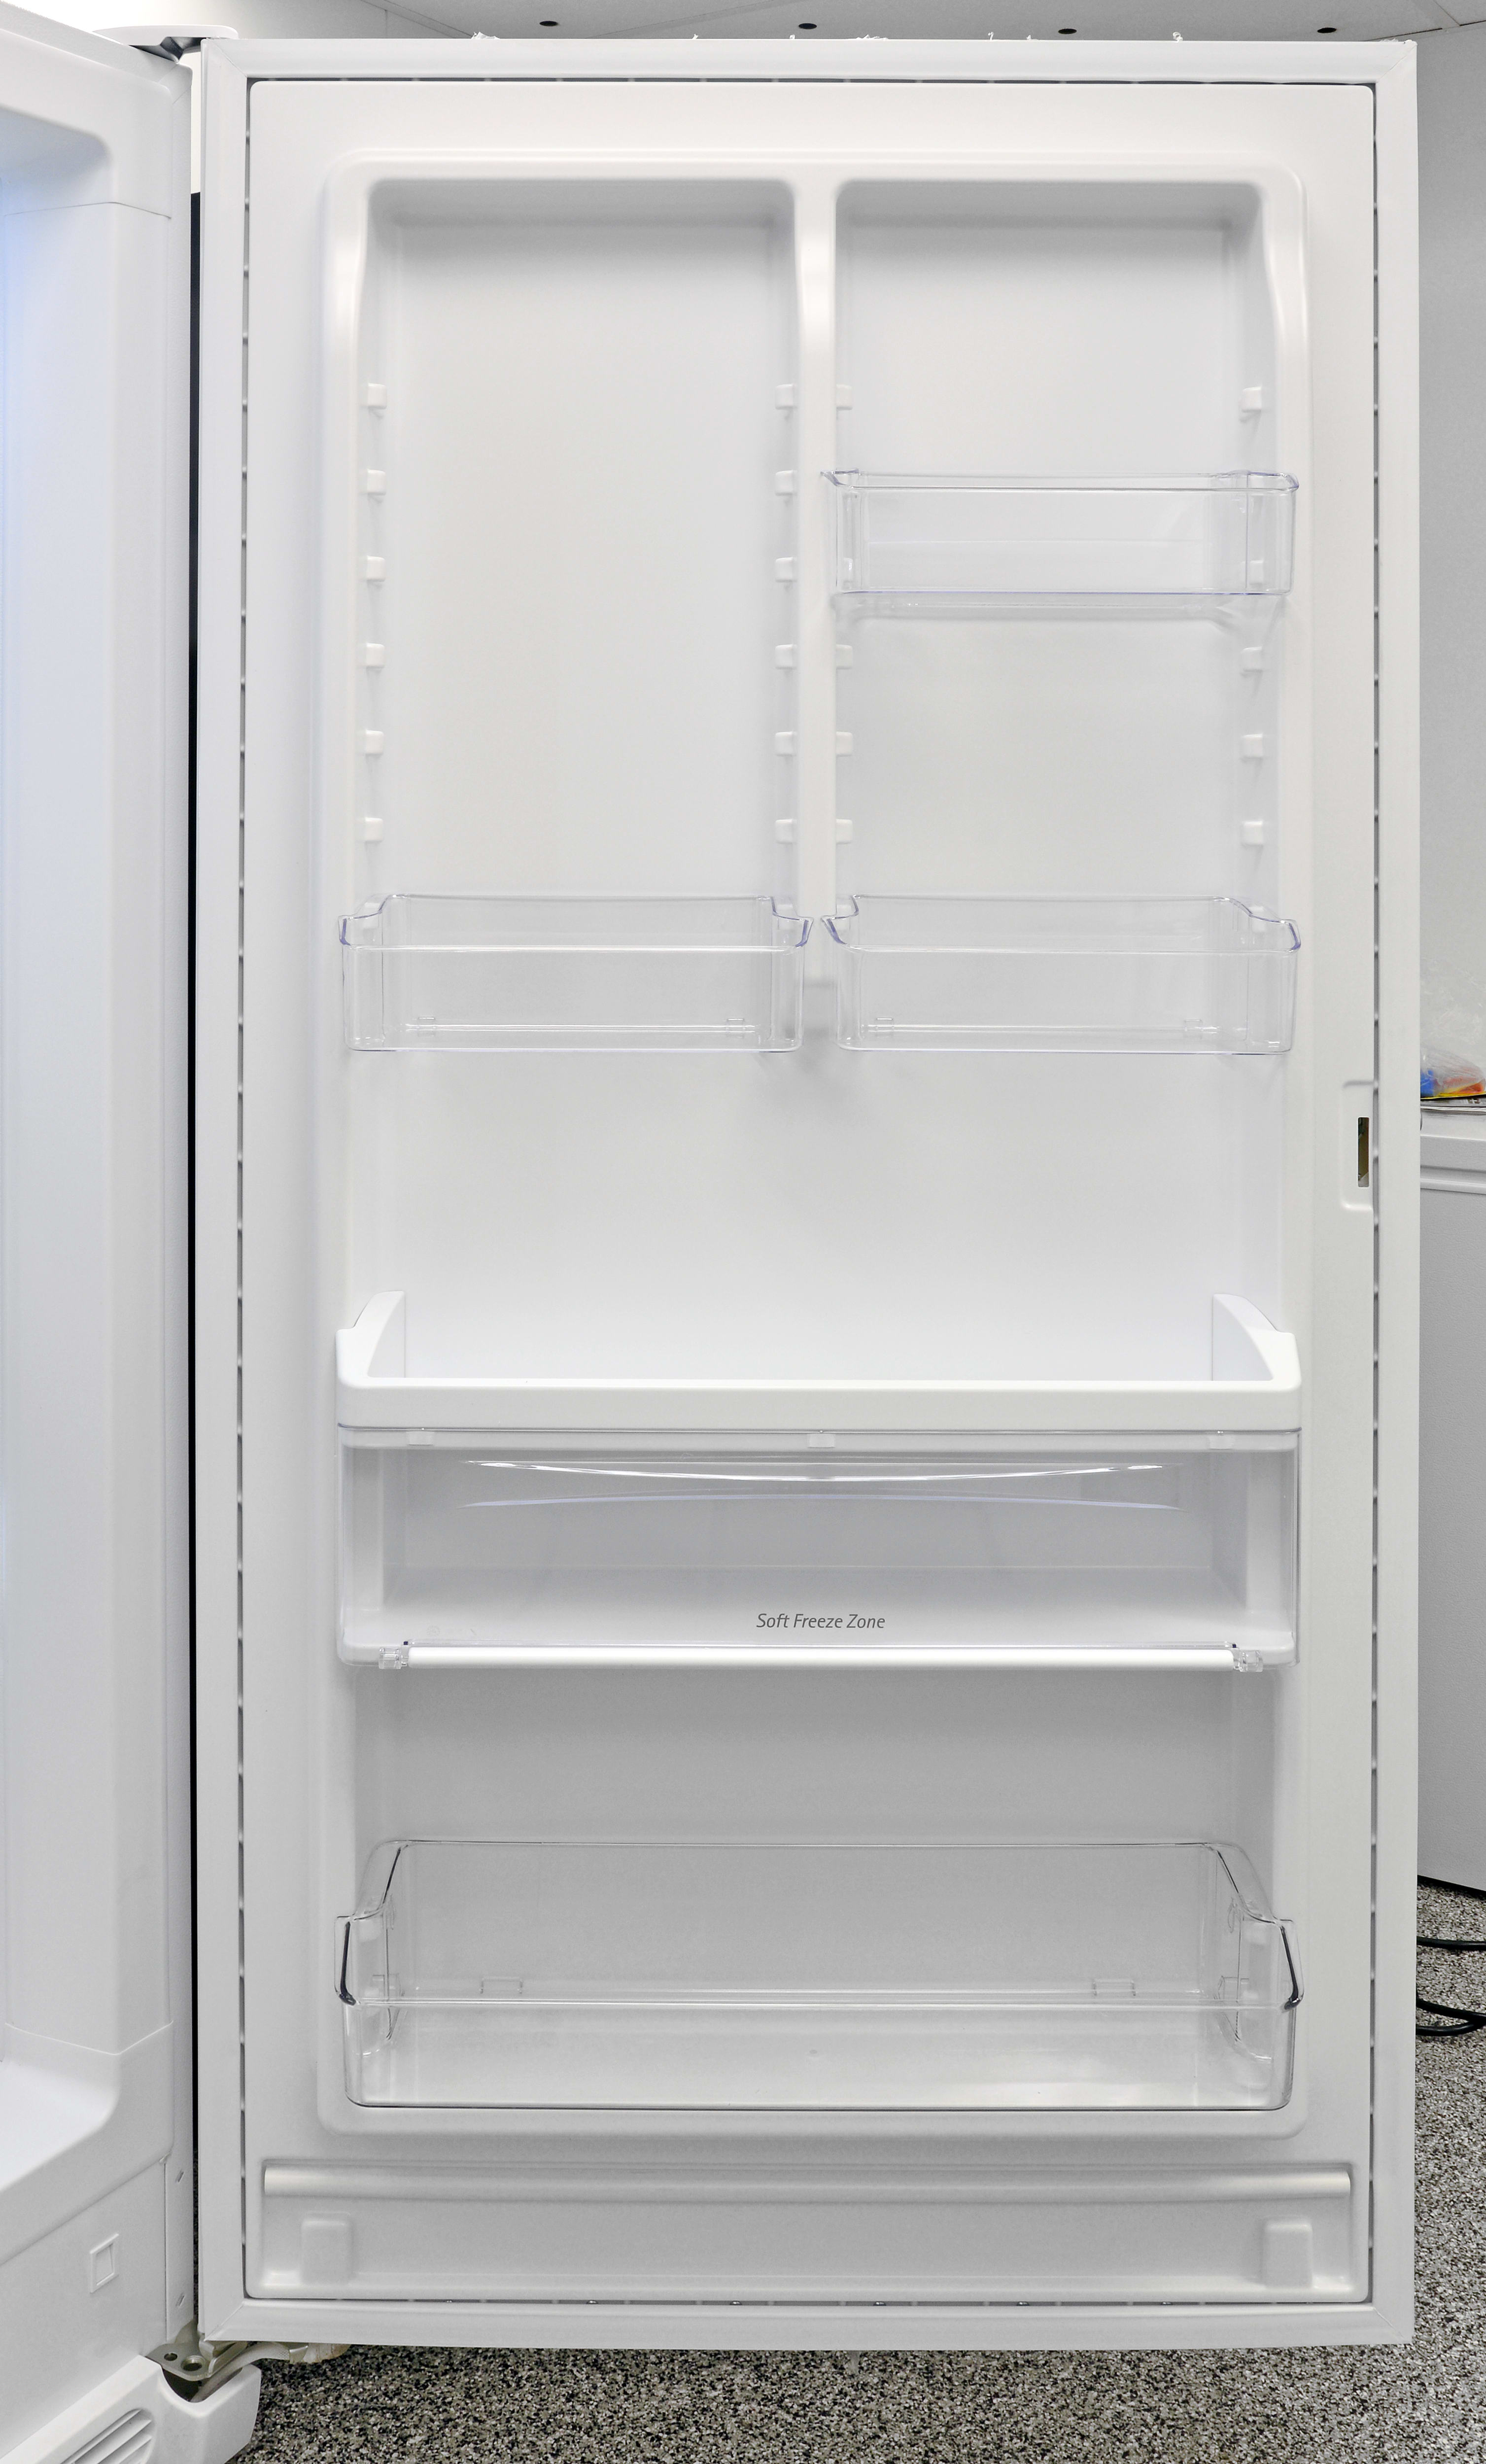 Adjustable door storage and a Soft Freeze Zone make the Frigidaire FFFH21F6QW an unusually versatile upright.